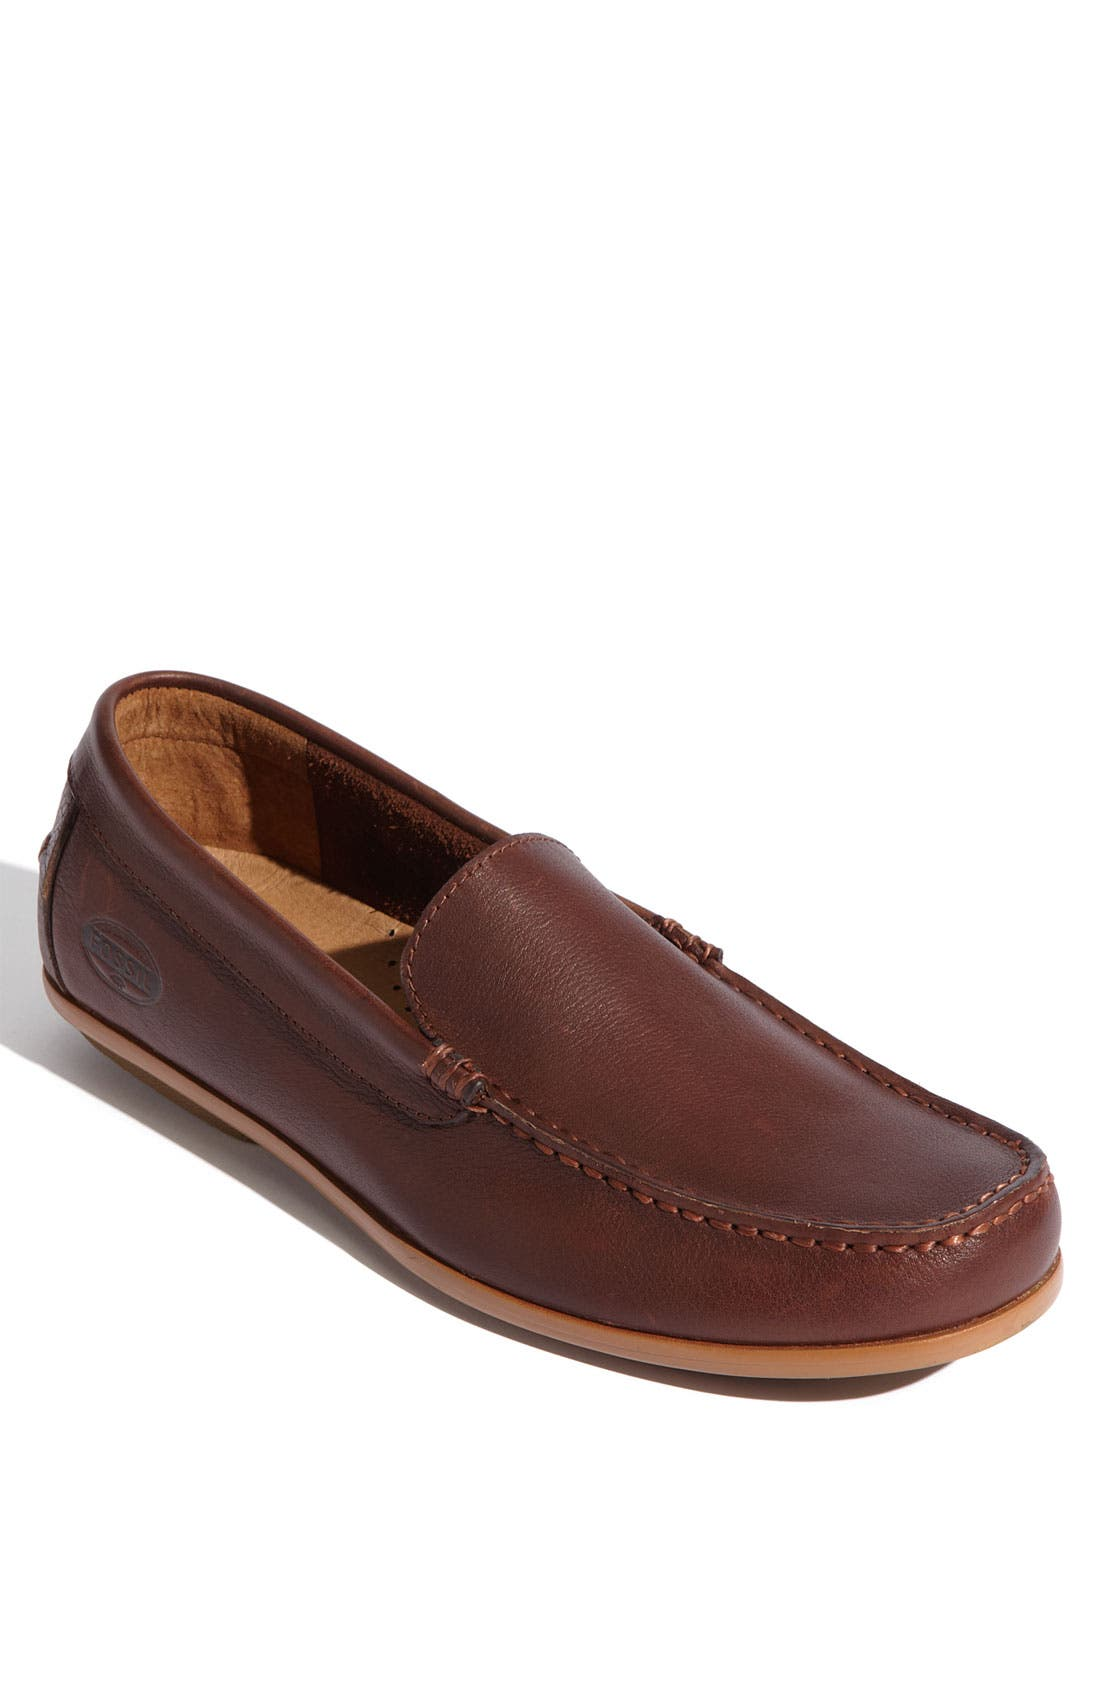 Alternate Image 1 Selected - Fossil 'Gene' Venetian Loafer